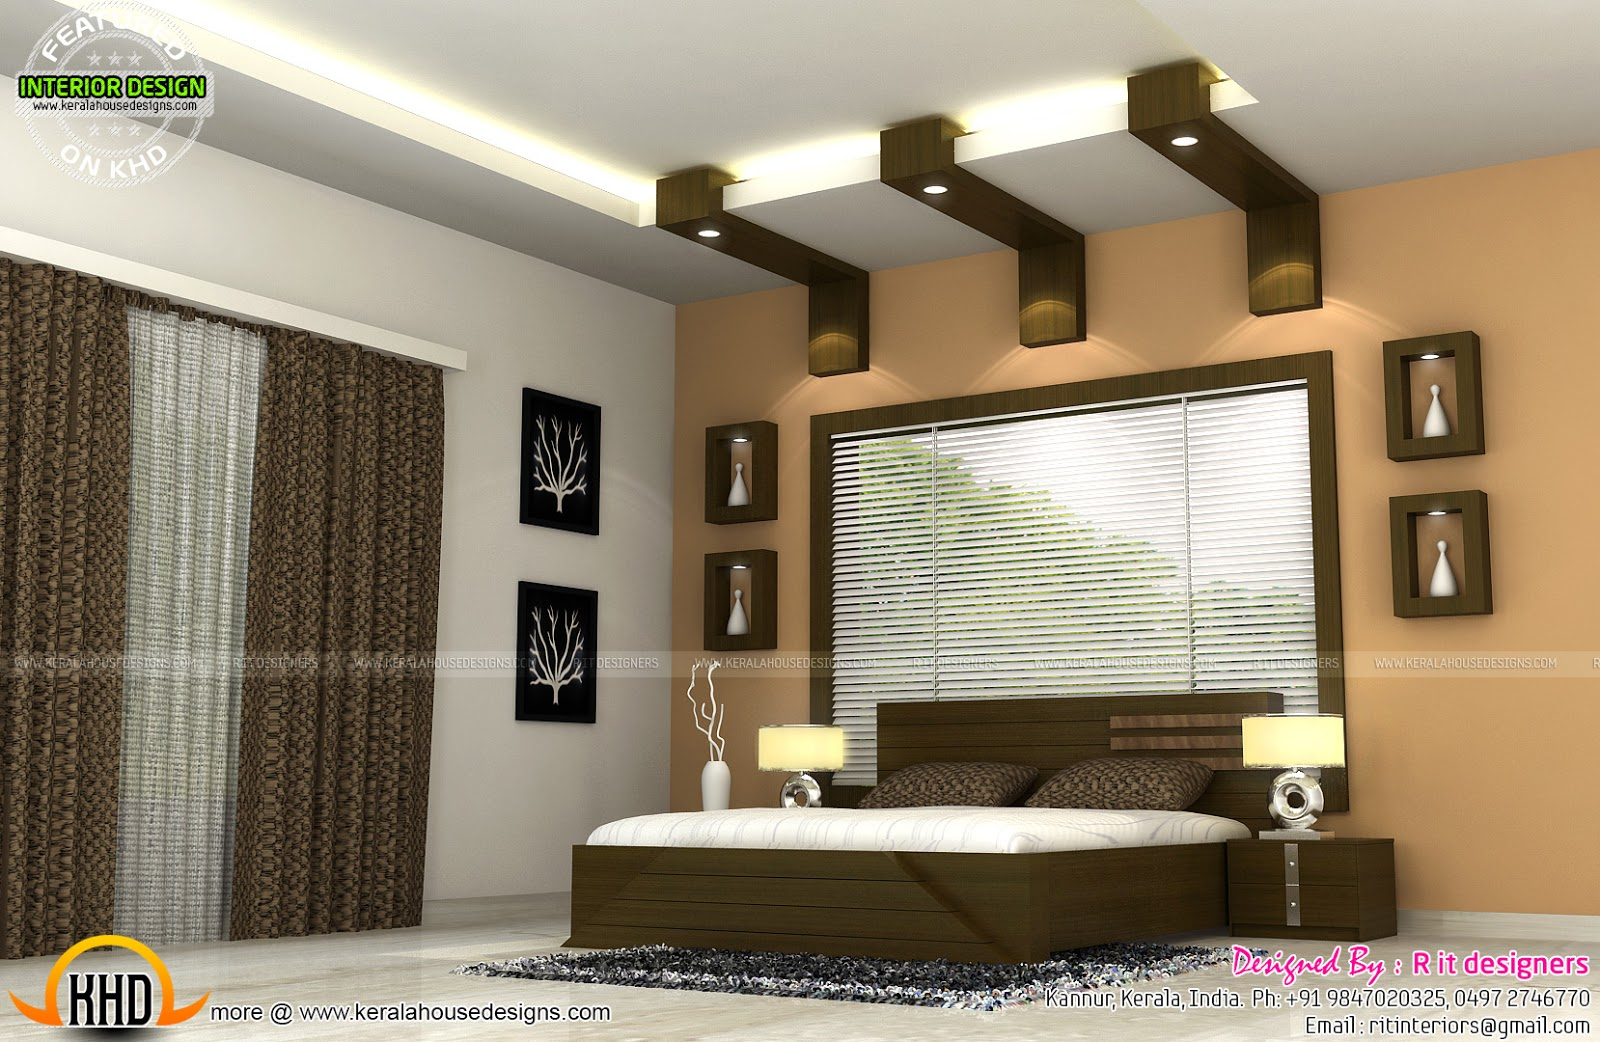 Interiors of bedrooms and kitchen kerala home design and for One bedroom house interior design